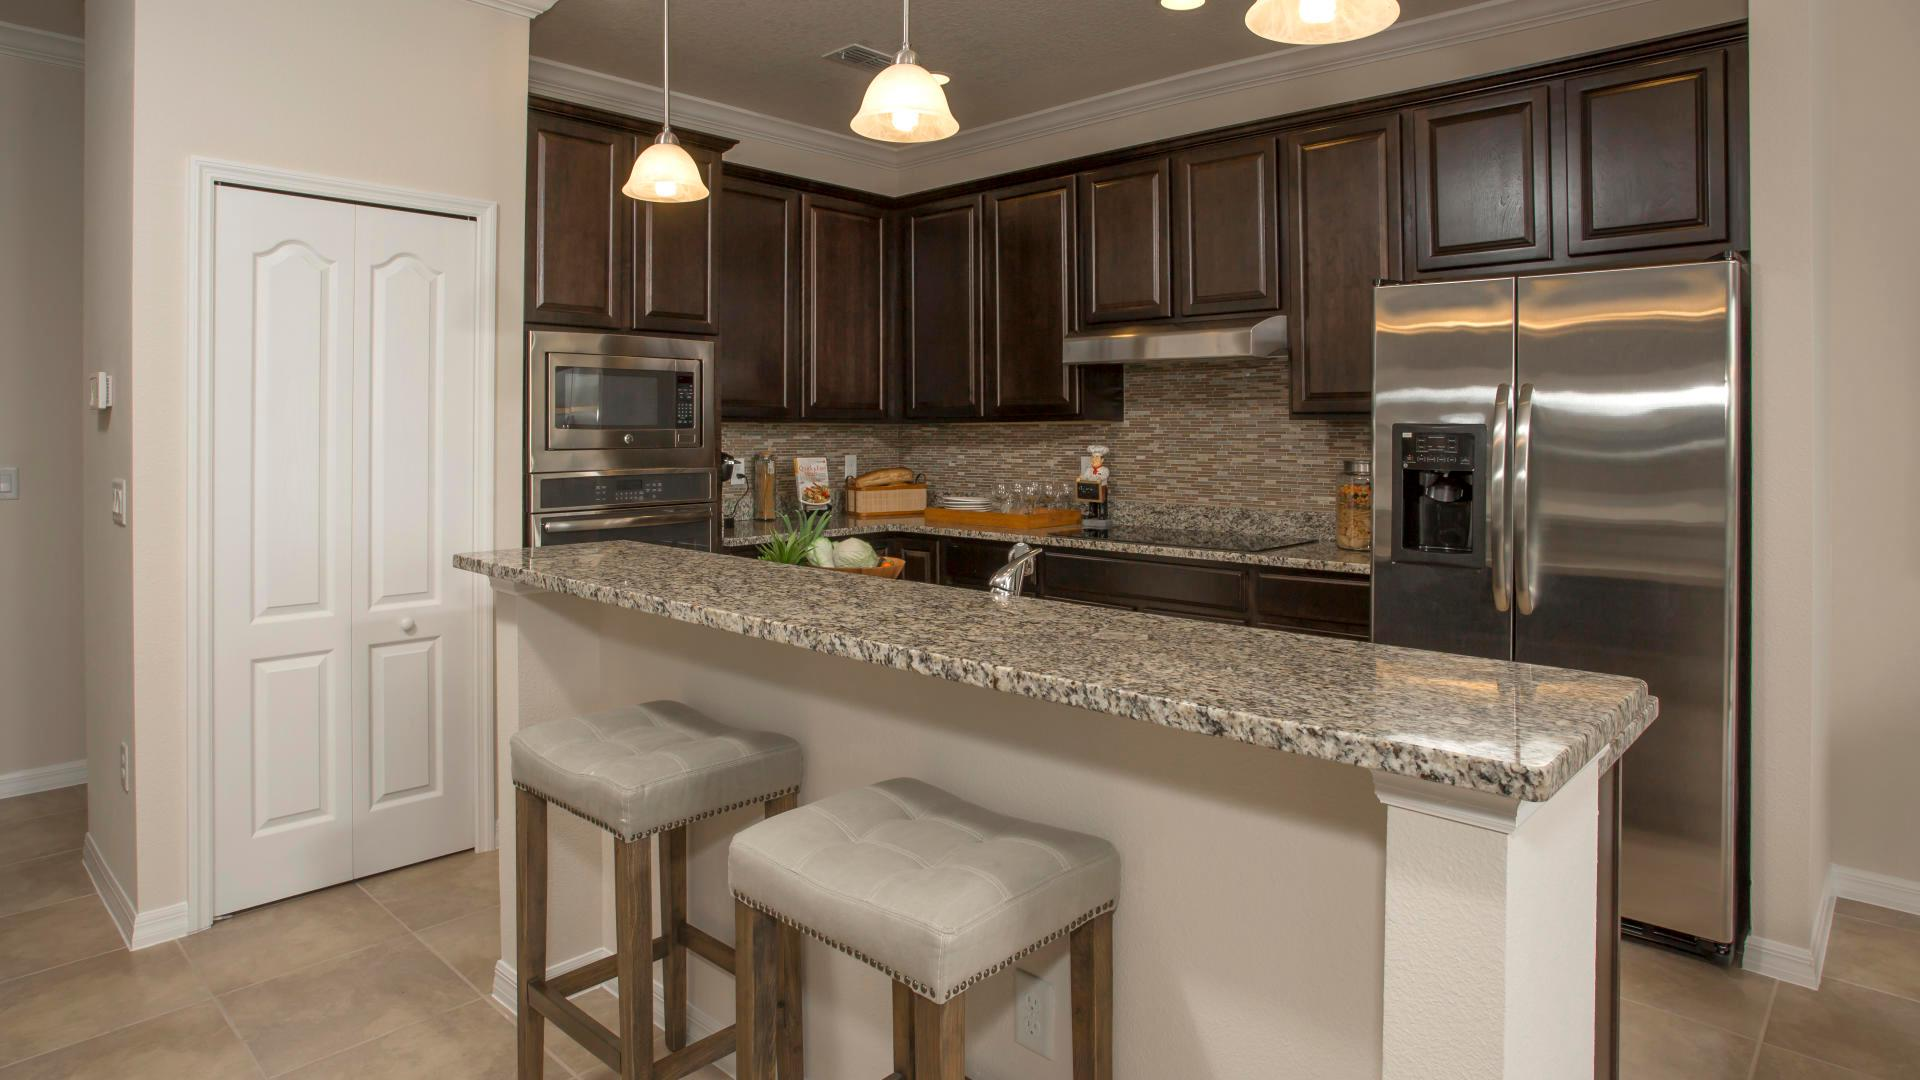 Kitchen featured in the Sierra By Maronda Homes in Melbourne, FL